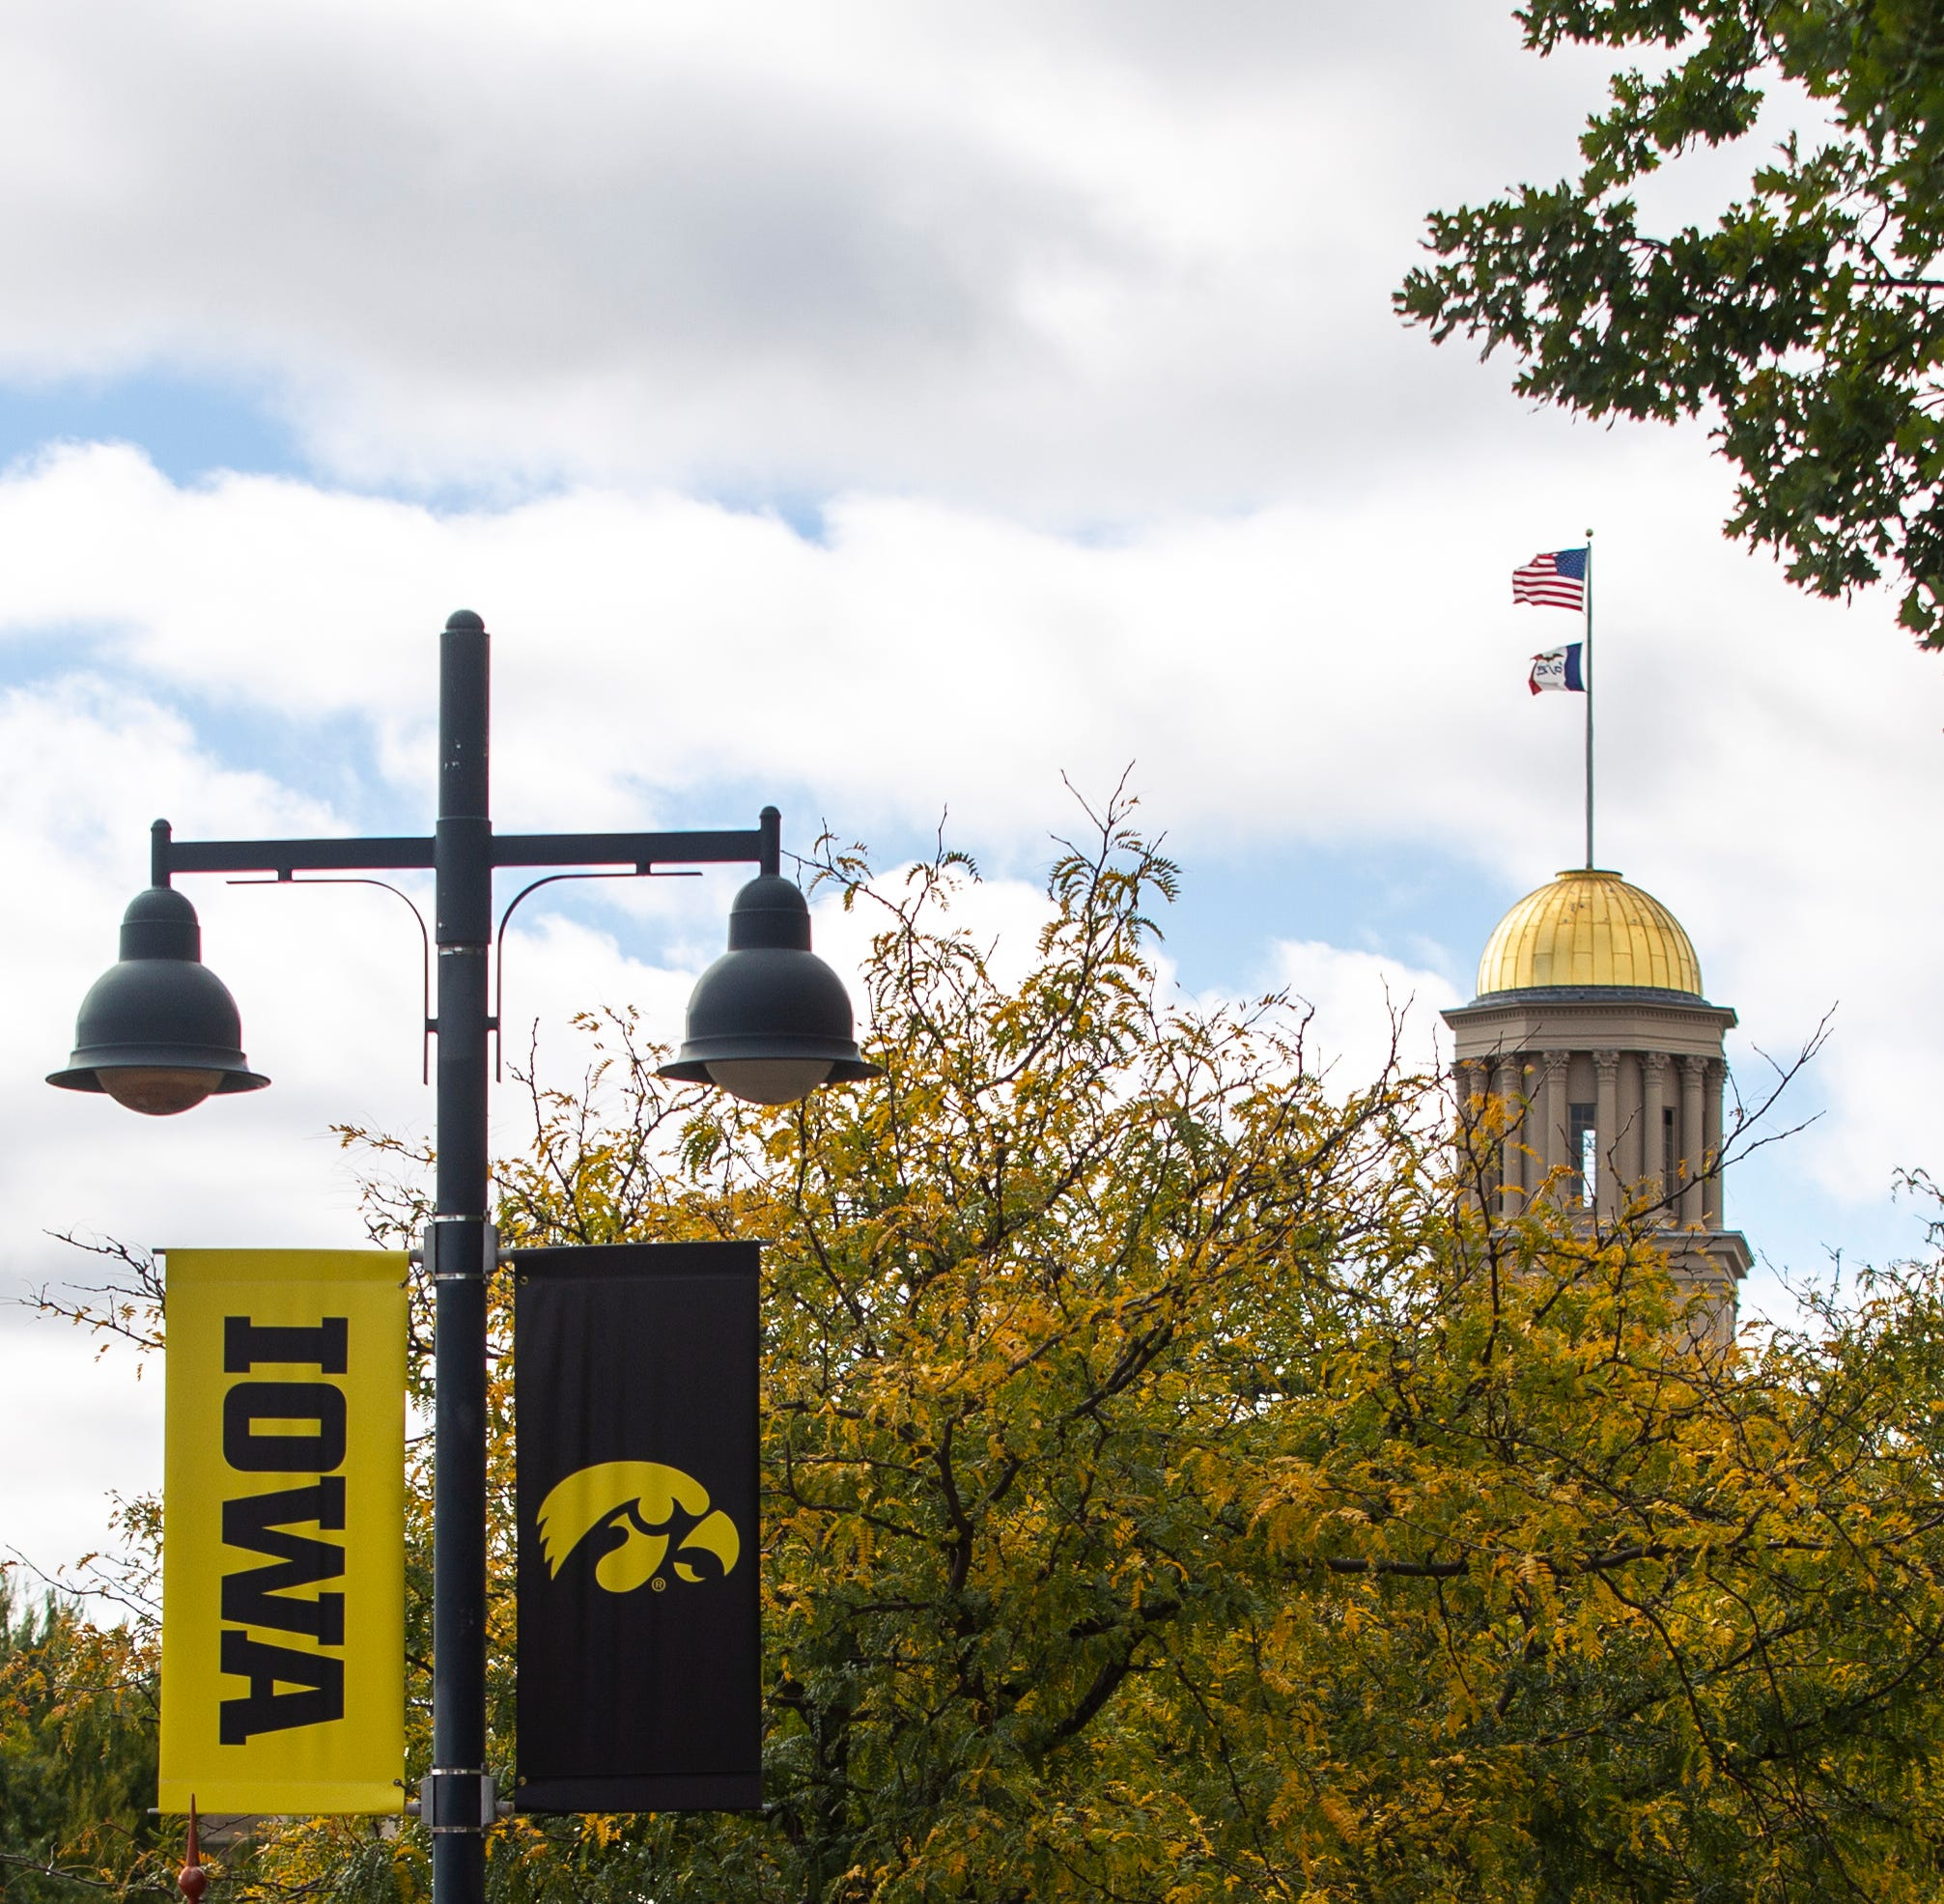 Sexual assault reported to UI officials